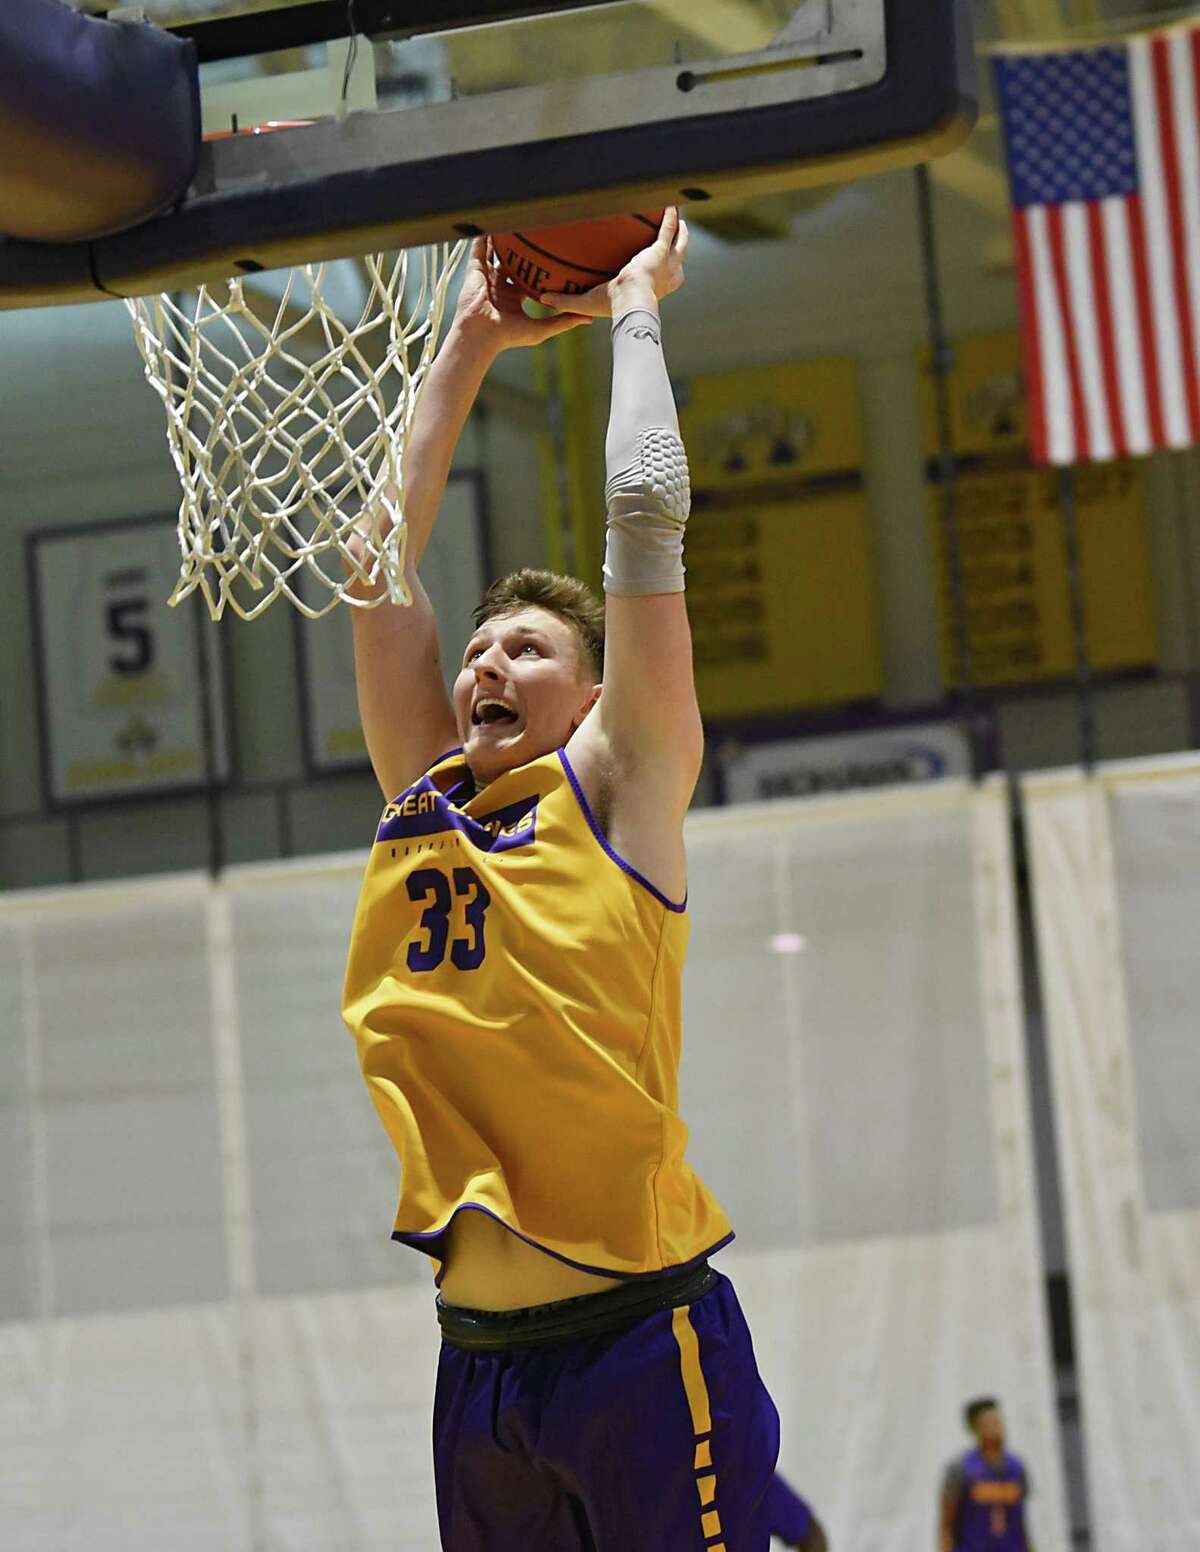 Sasha French slam dunks the ball during the first official practice for the University at Albany basketball team on Friday, Oct. 4, 2019 in Albany, N.Y. (Lori Van Buren/Times Union)